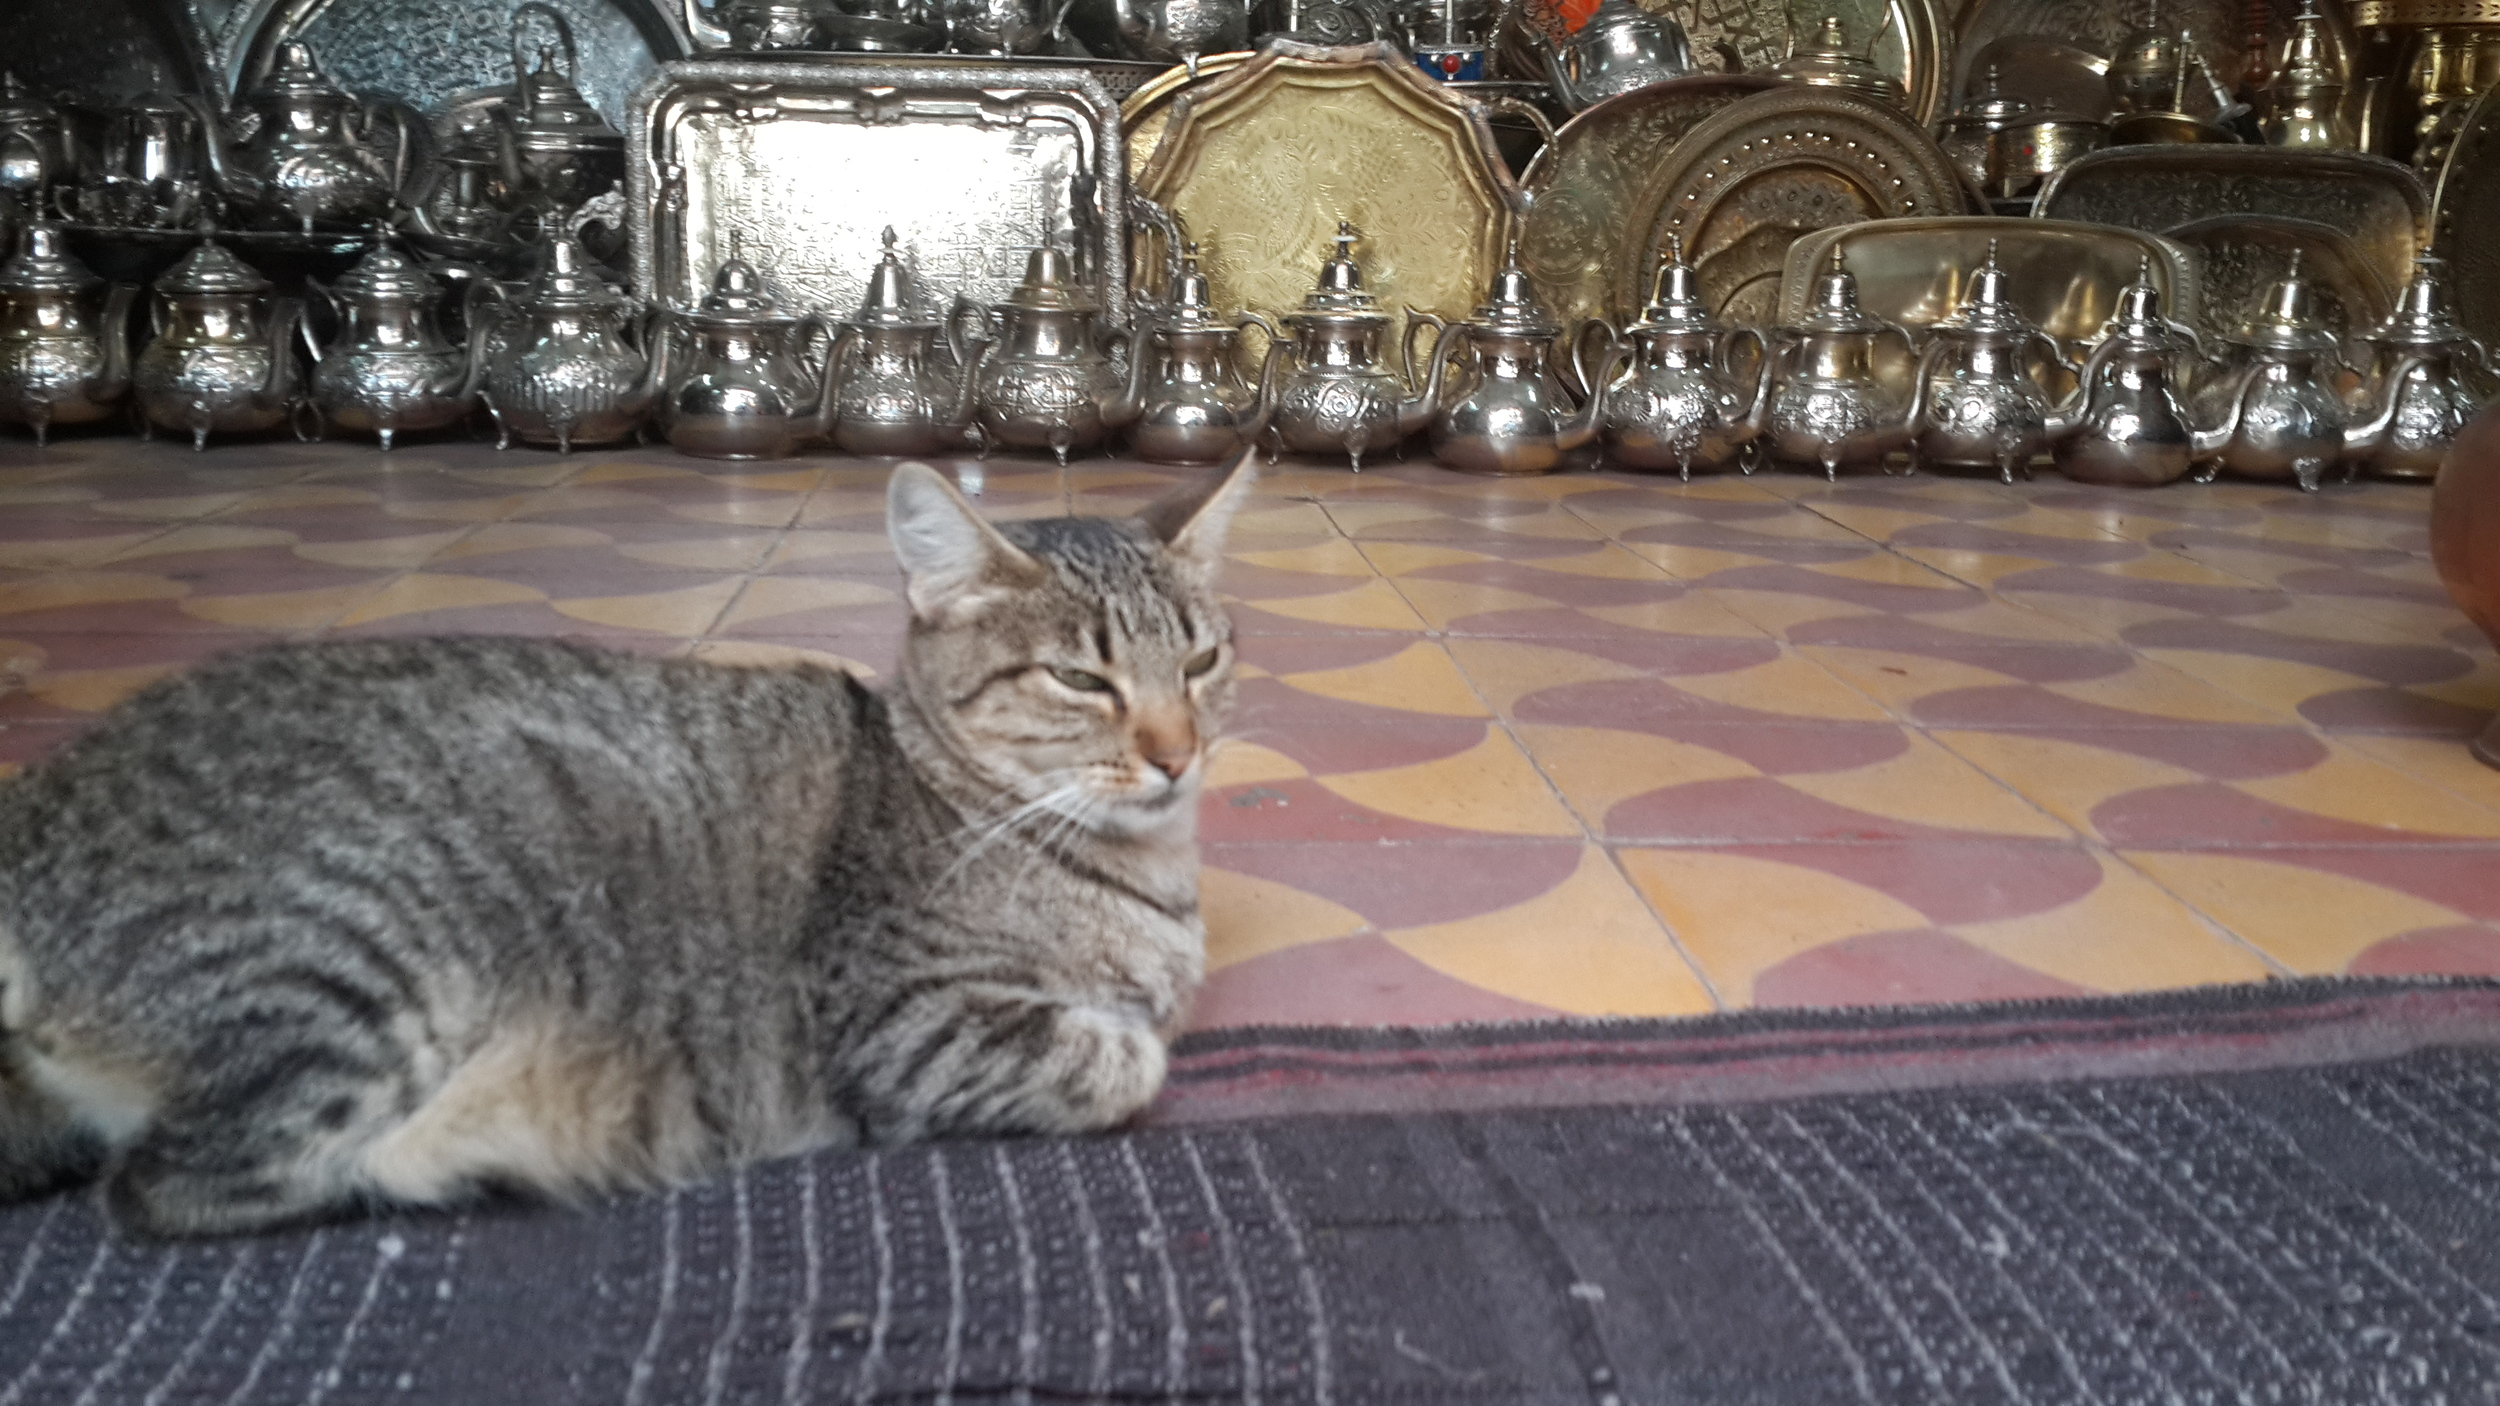 Mimi, the shop owner